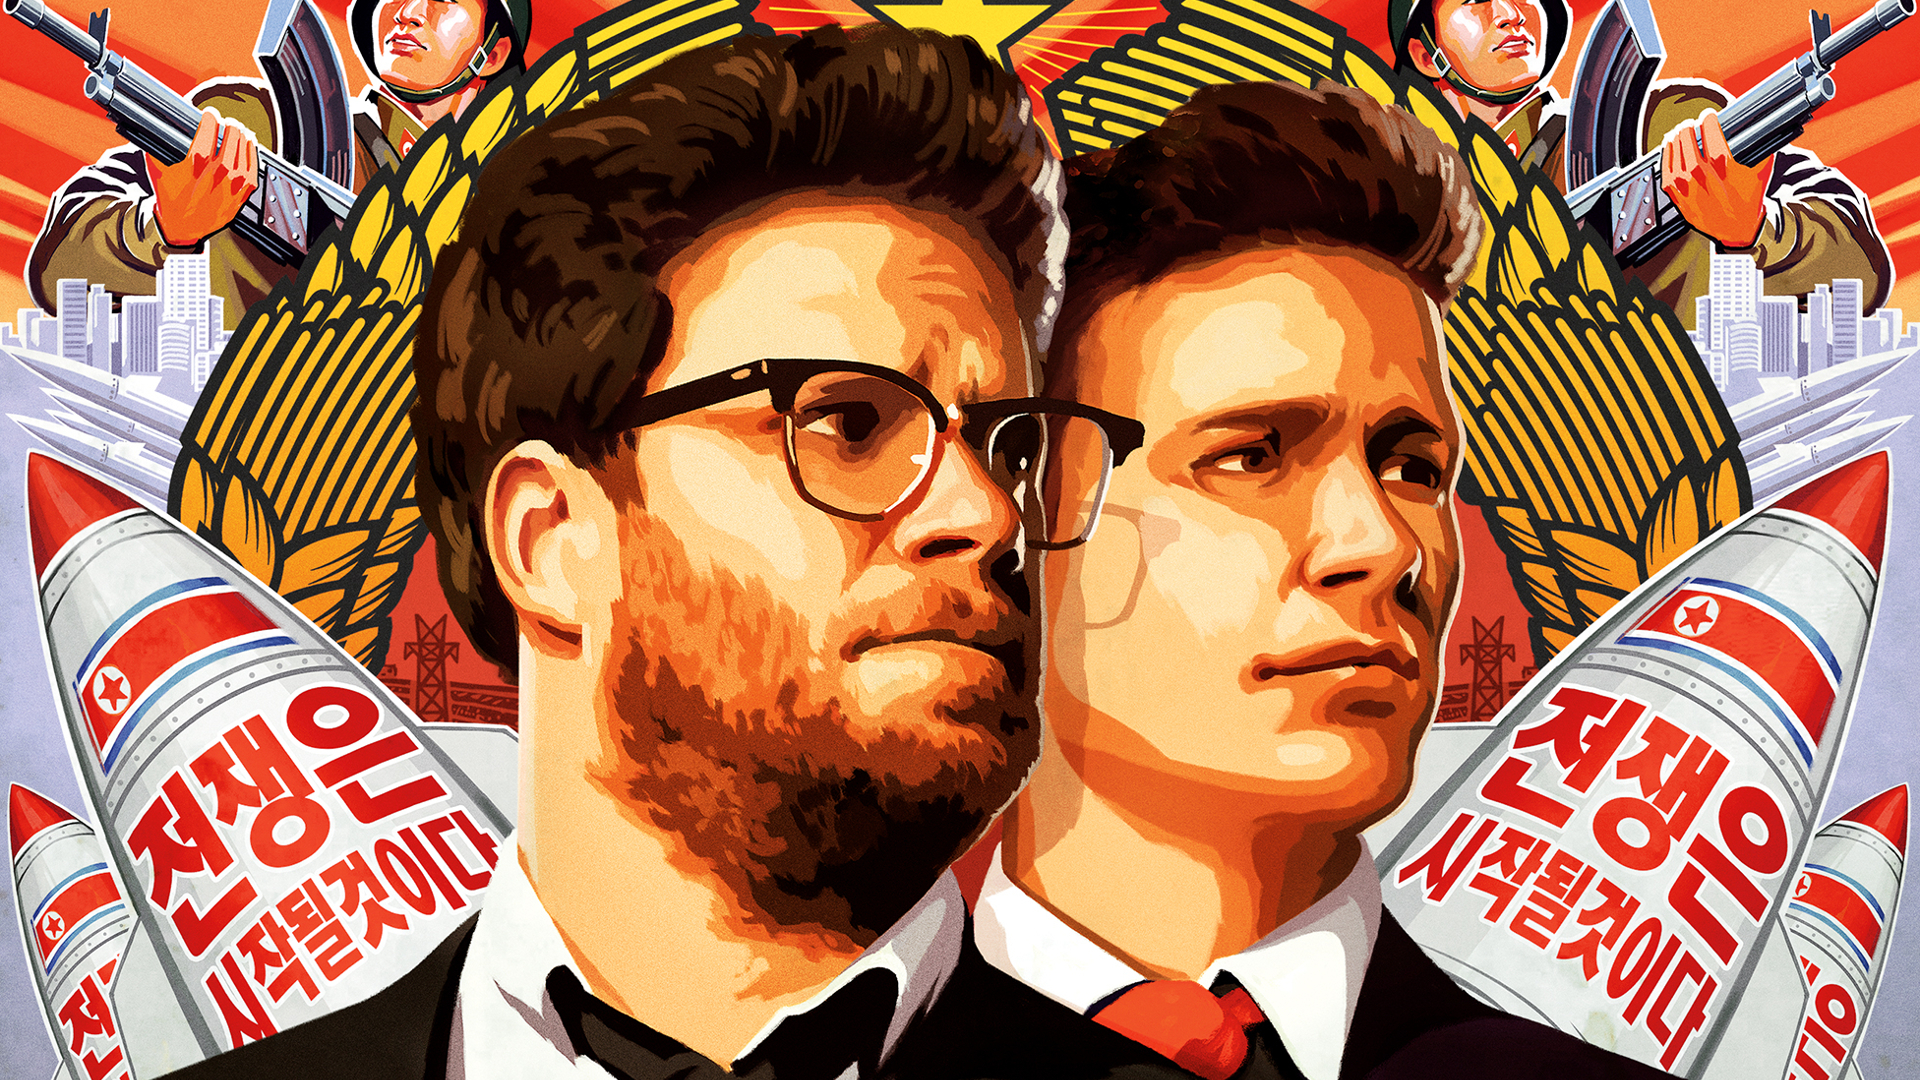 Kim Jong-un in trailer 'The Interview'